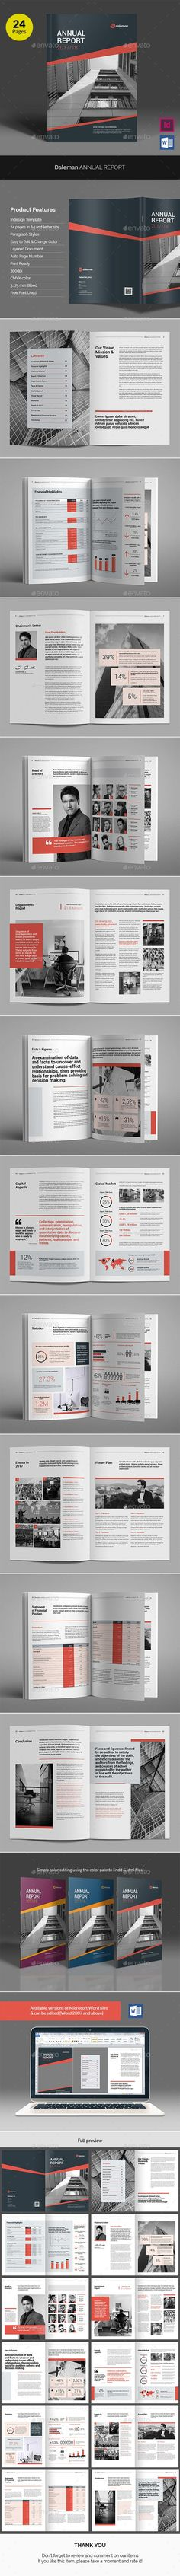 Daleman Annual Report v02 - Corporate Brochures